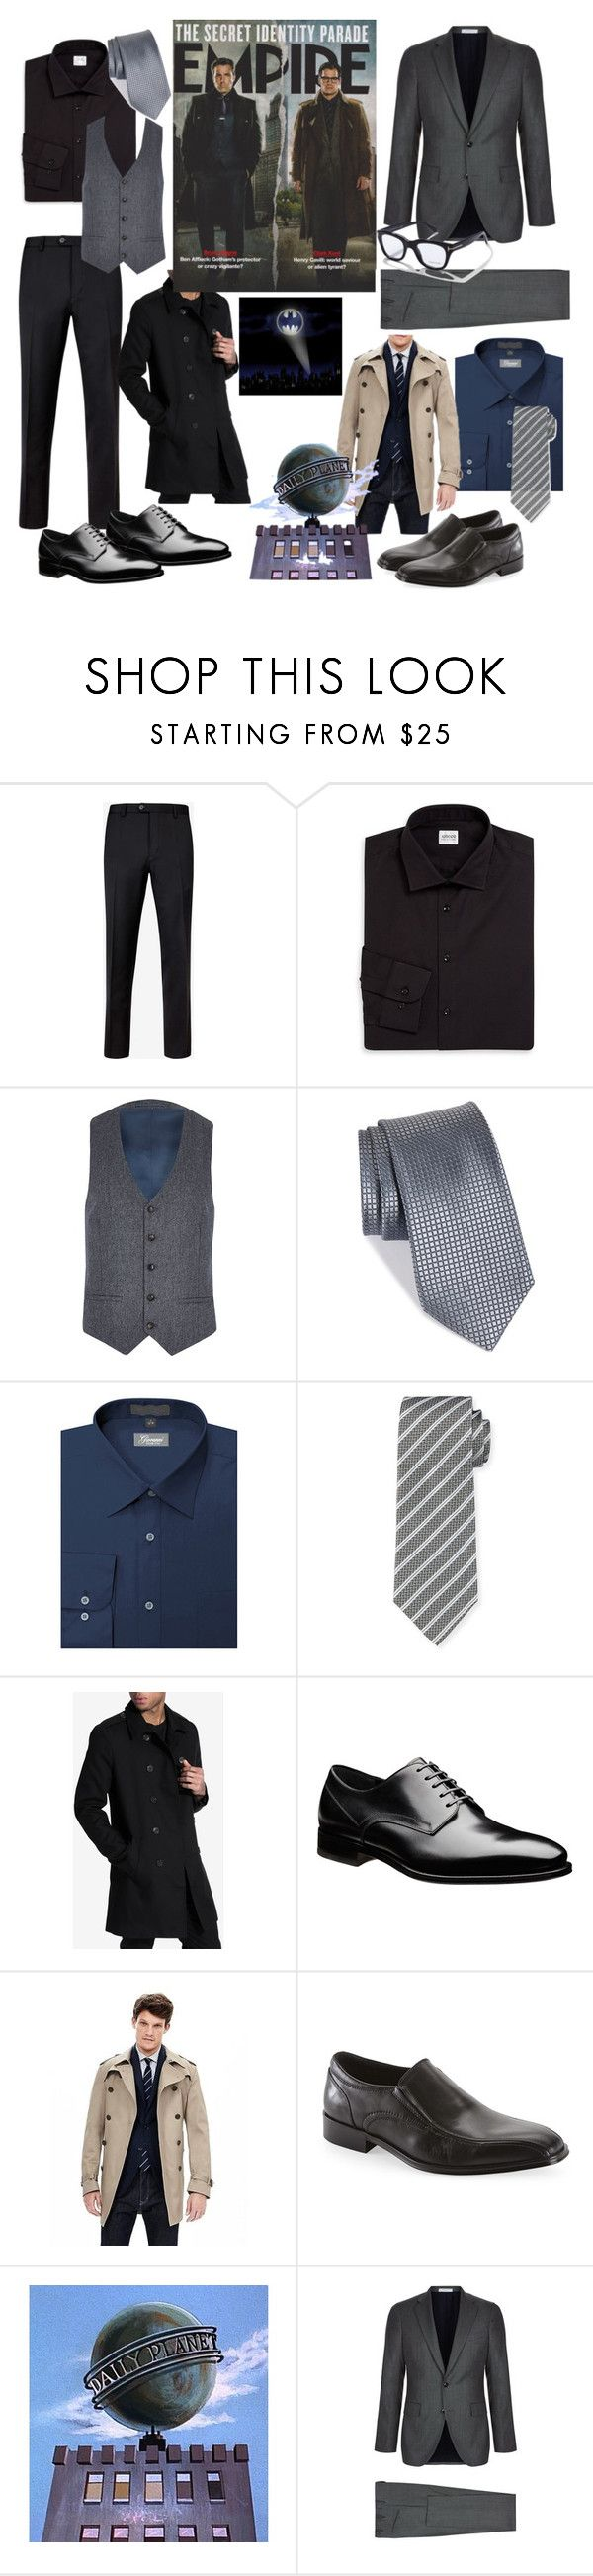 """""""Bruce Wayne meet Clark Kent"""" by hmoua82 ❤ liked on Polyvore featuring Ted Baker, Armani Collezioni, River Island, Nordstrom, Robert Graham, Only & Sons, Banana Republic, Steve Madden, Boglioli and Tom Ford"""